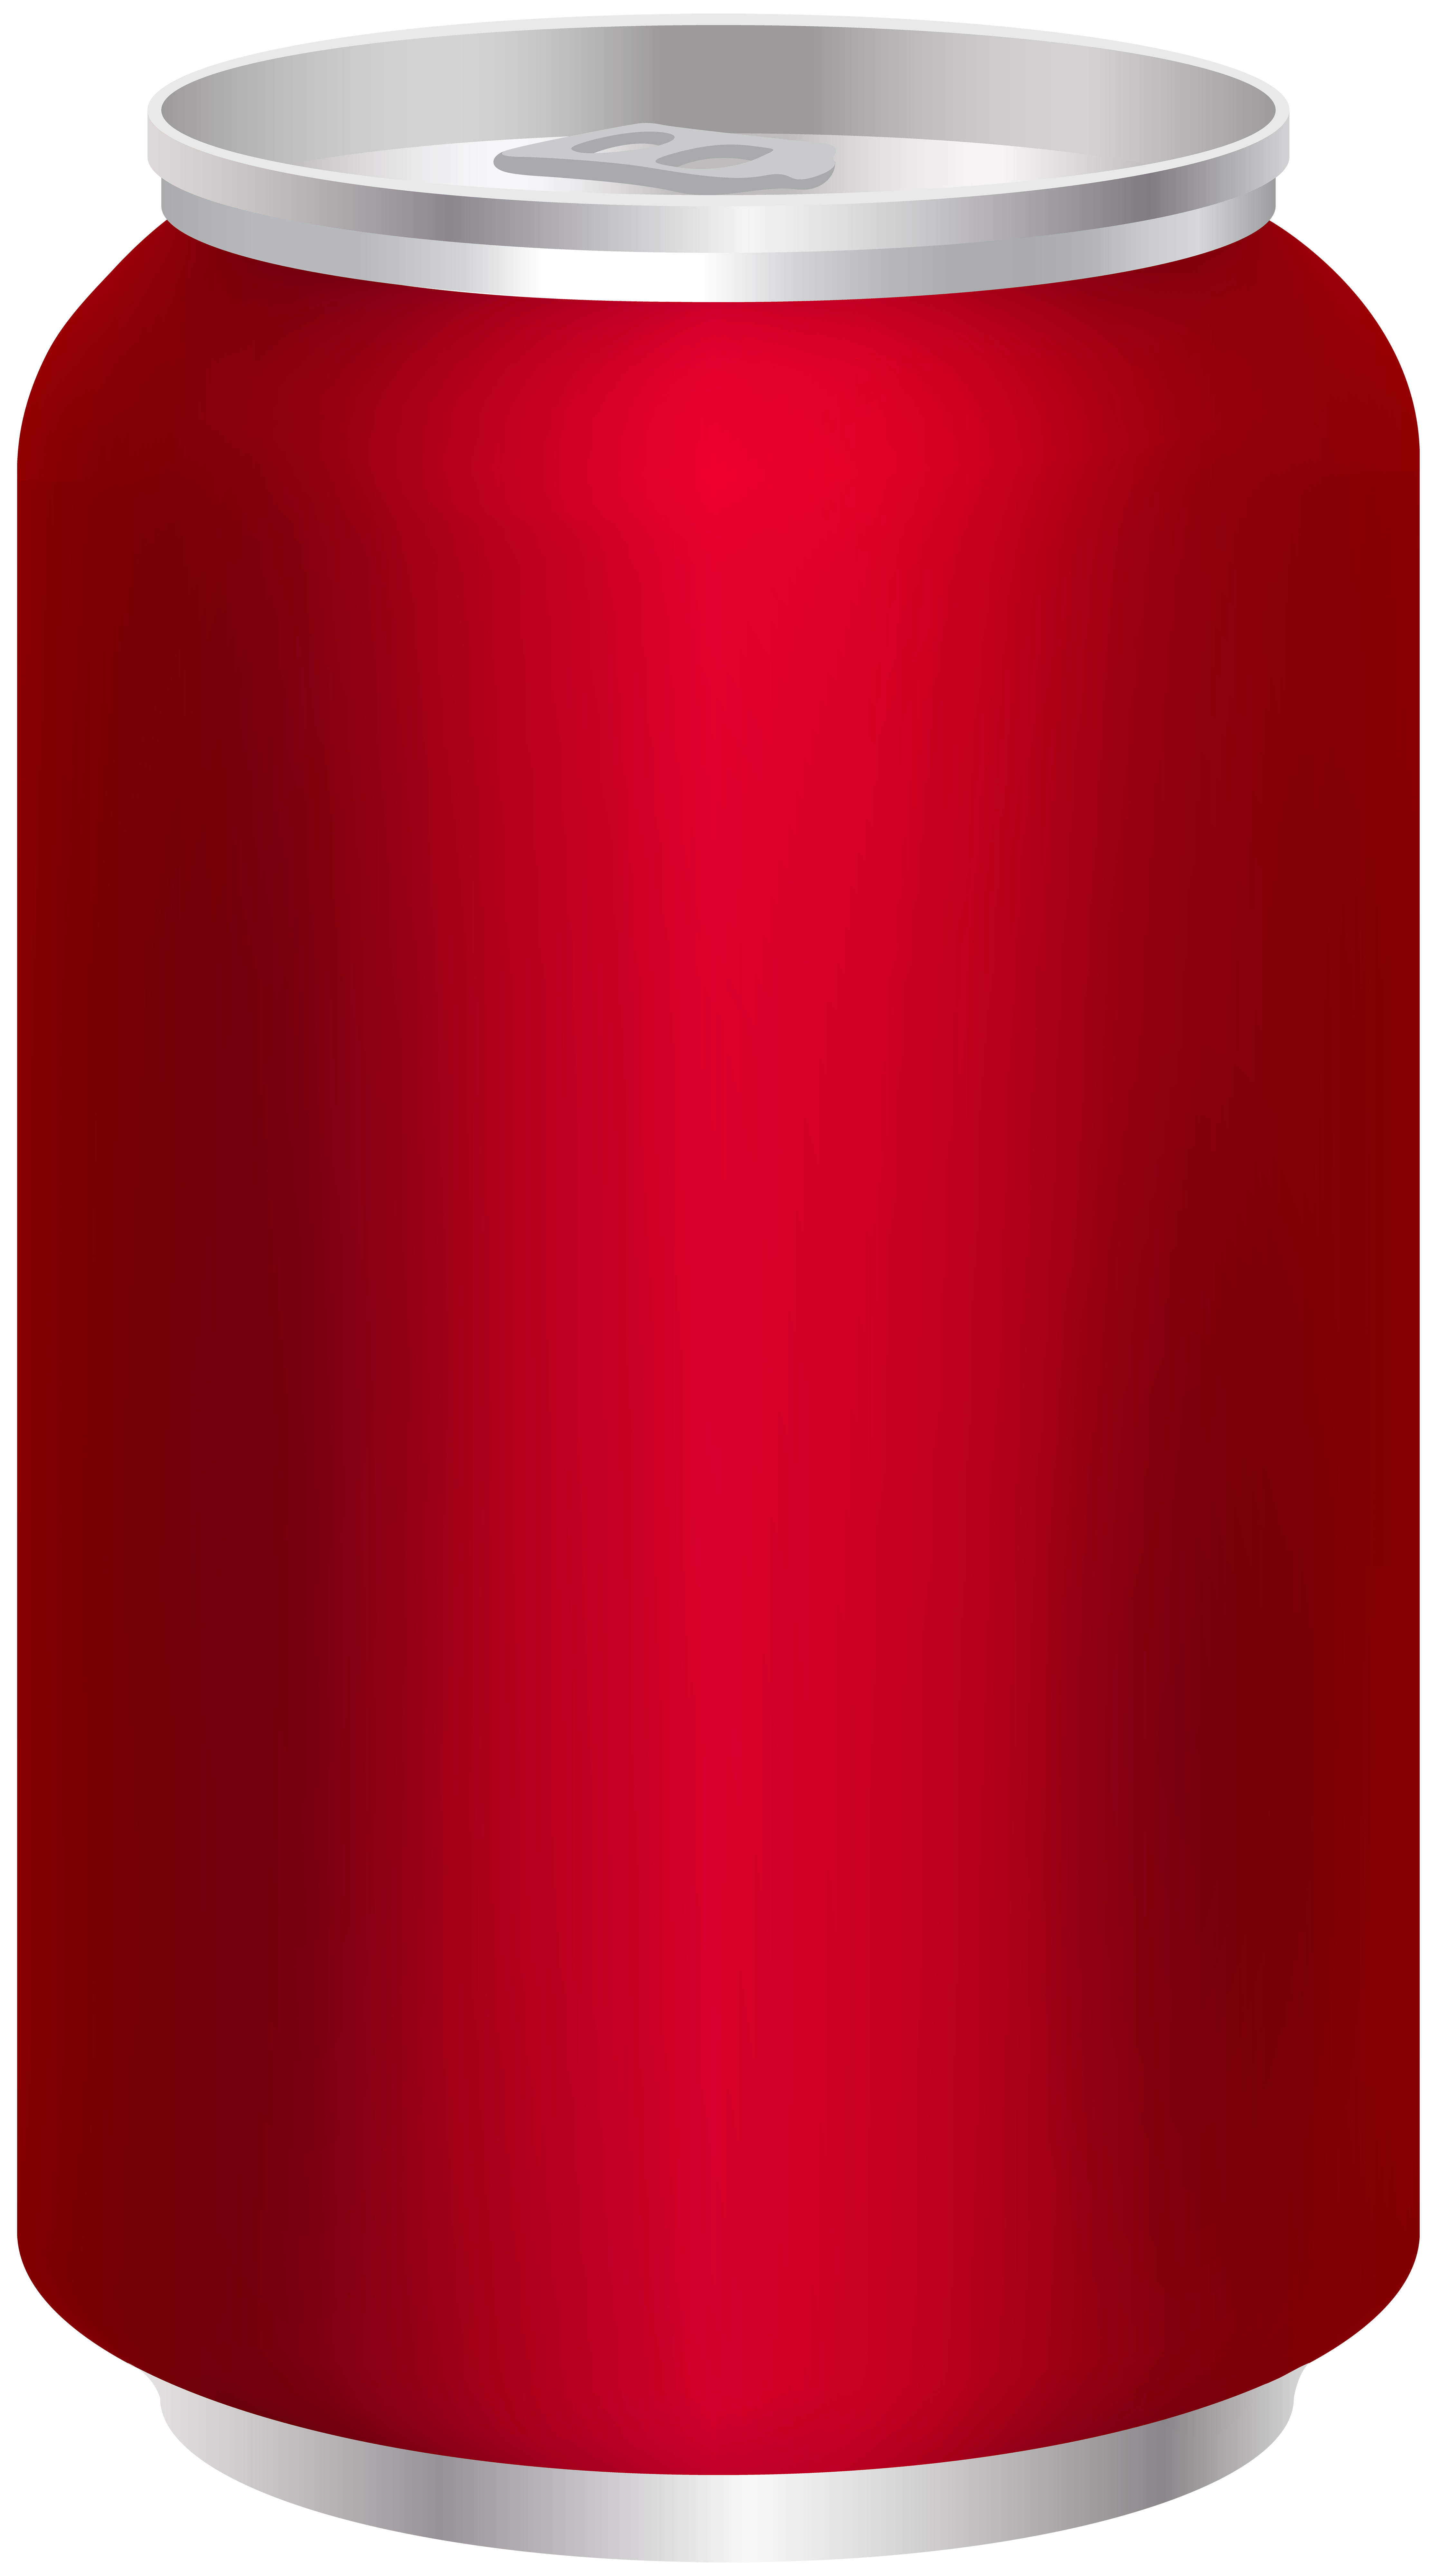 Soda Can Red Clip Art Image.